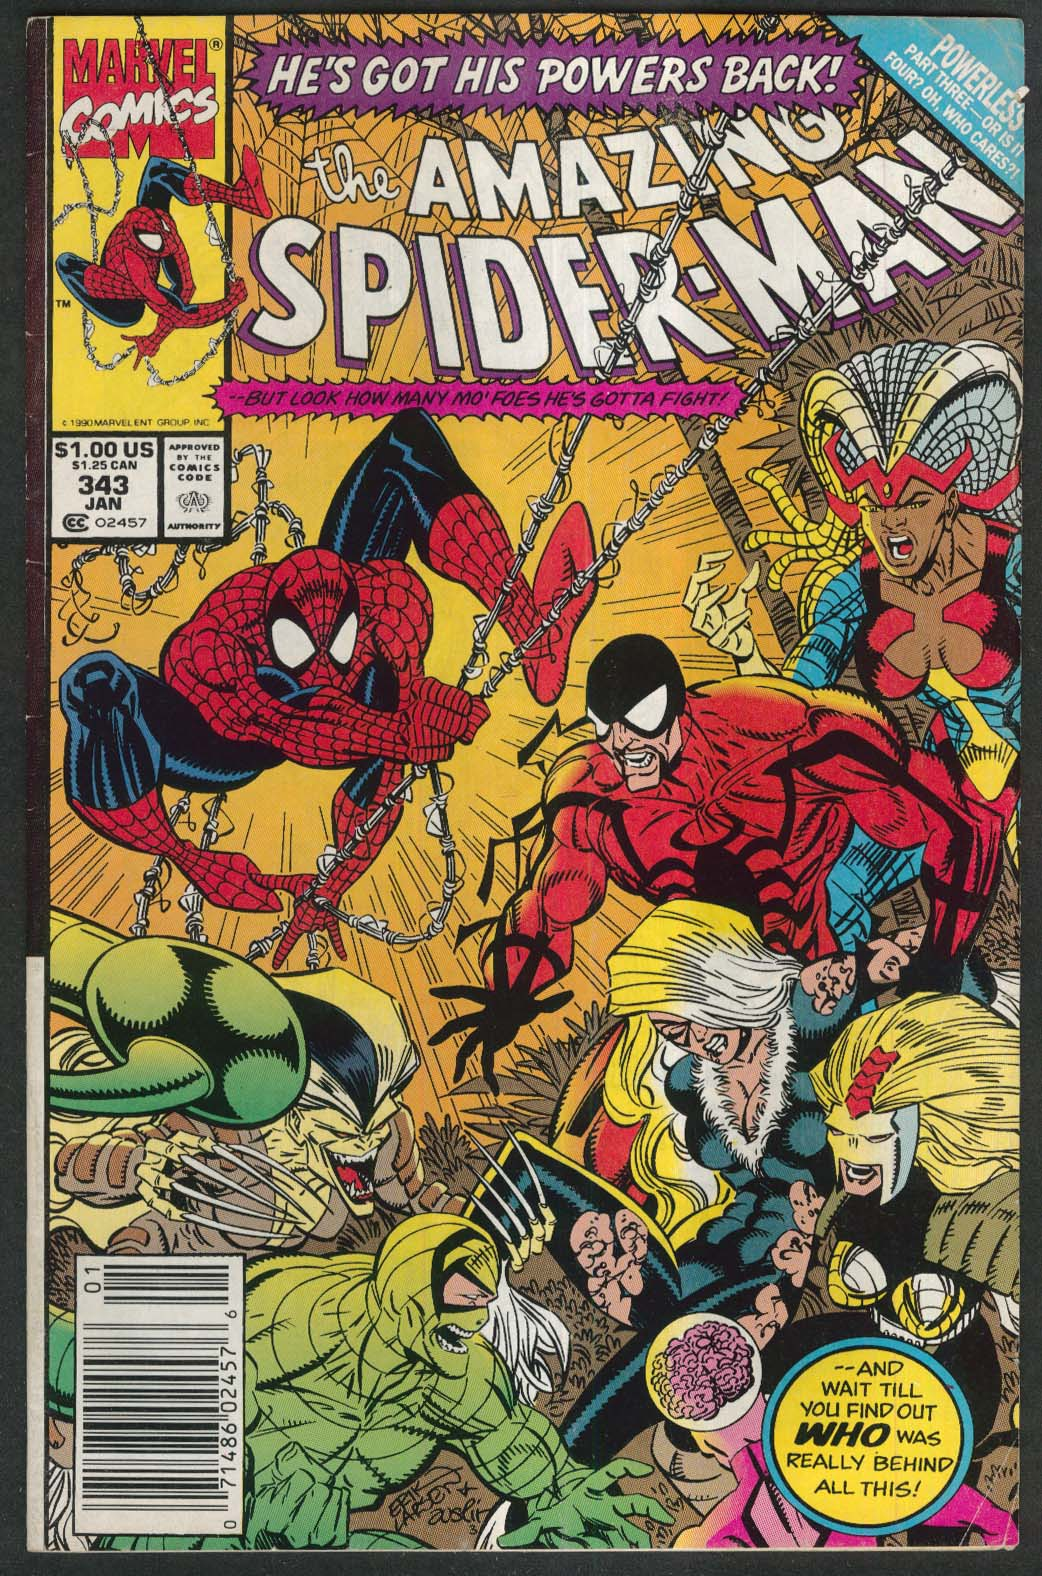 AMAZING SPIDER-MAN #343 Marvel comic book 1 1991